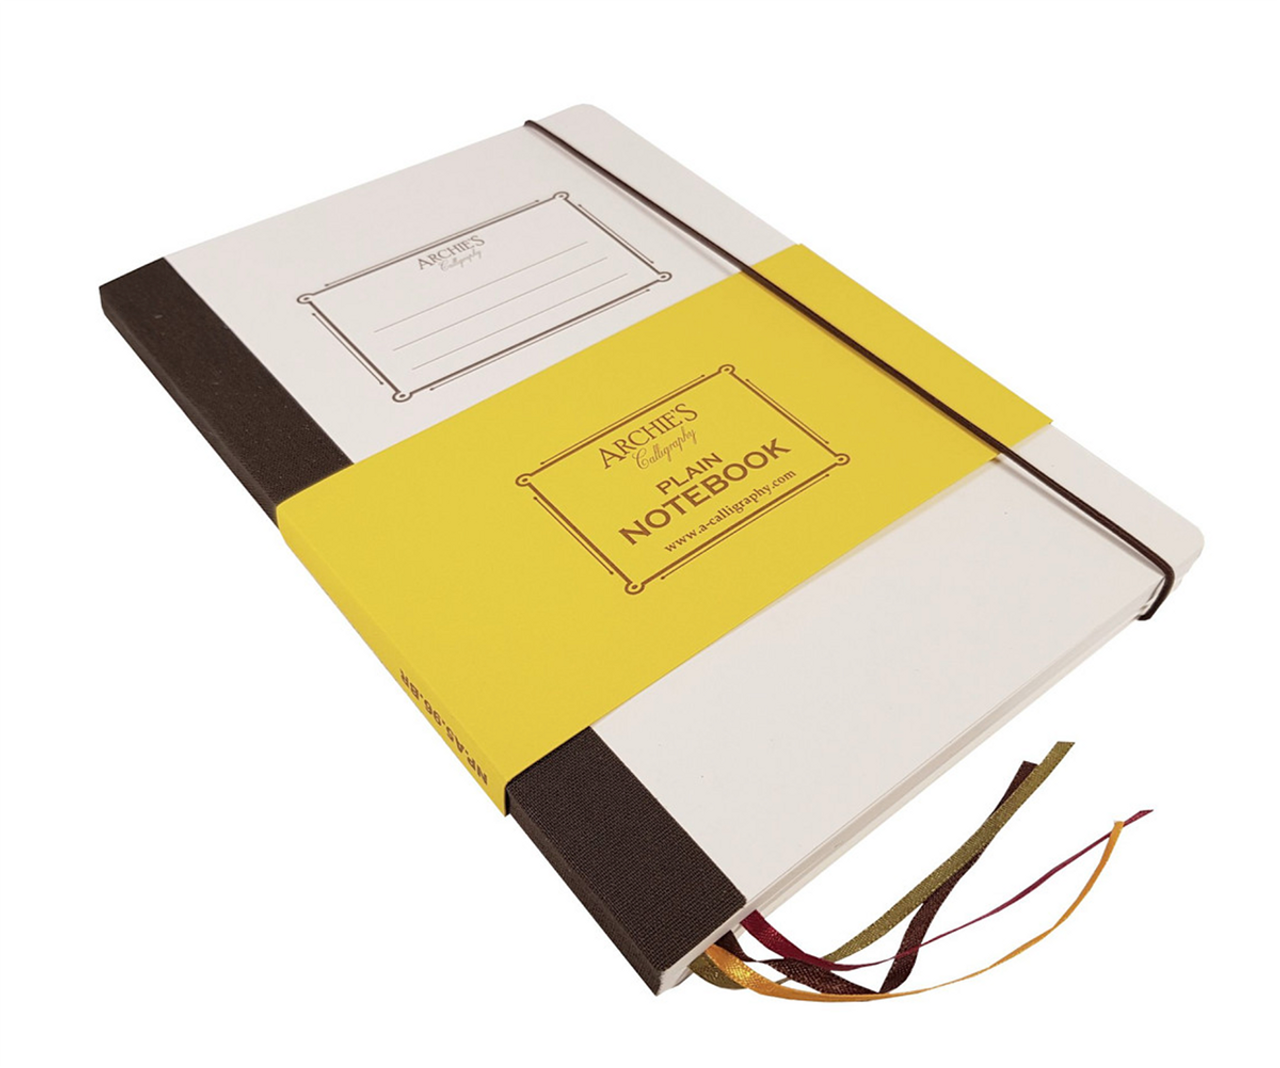 Archie's Calligraphy A5 notebook, plain pages